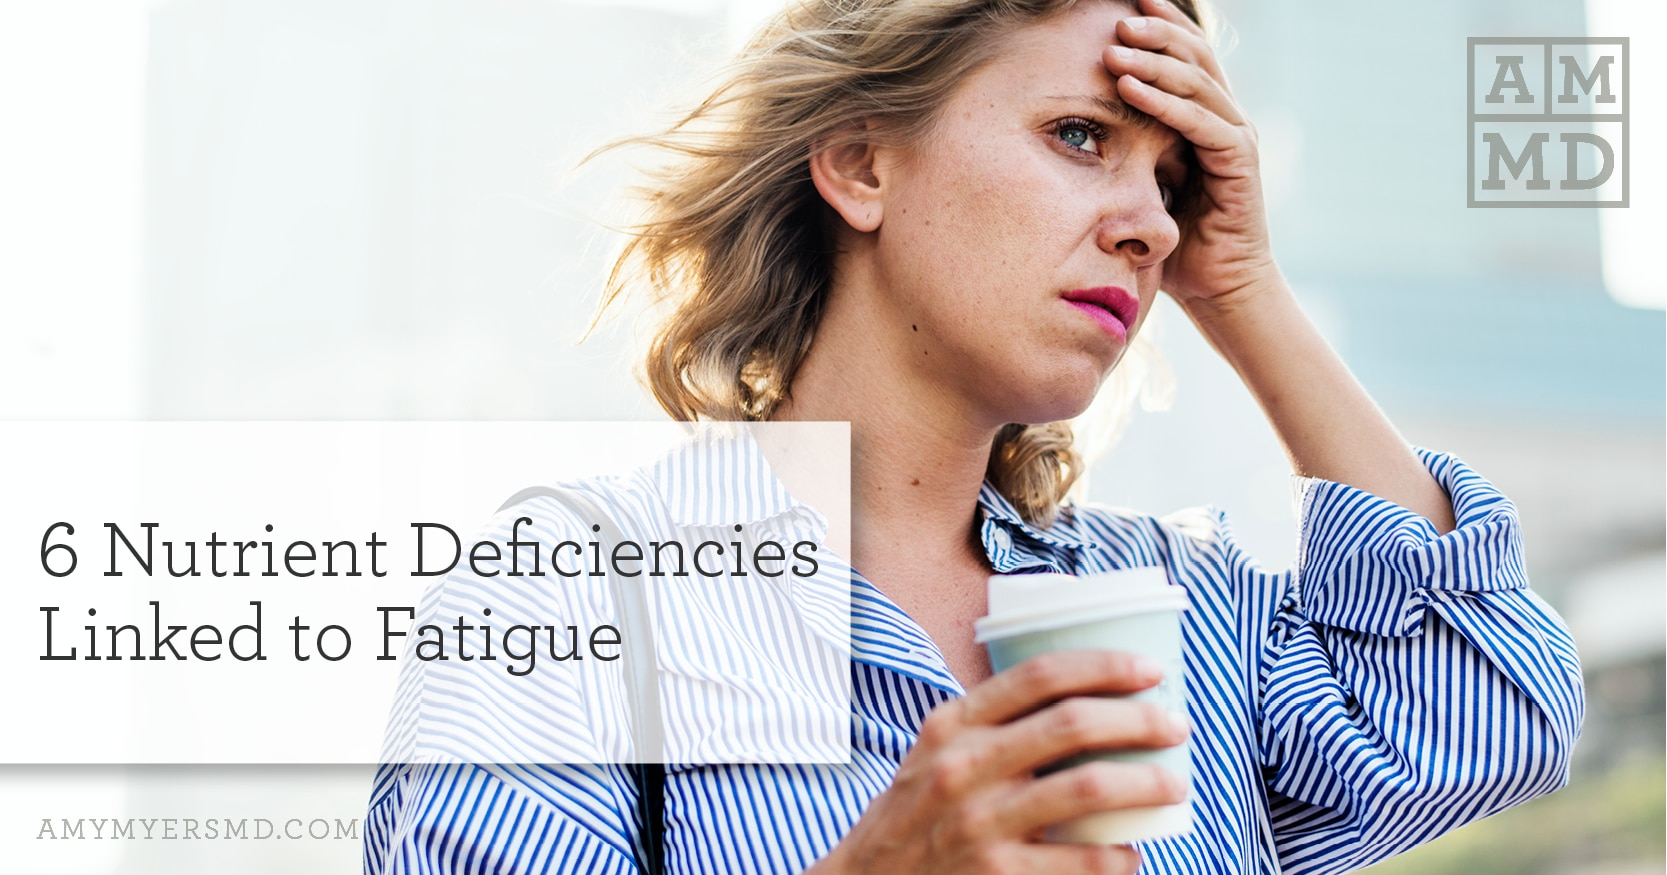 6 Nutrient Deficiencies Linked to Fatigue - Featured Image - Woman Feeling Tired - Amy Myers MD